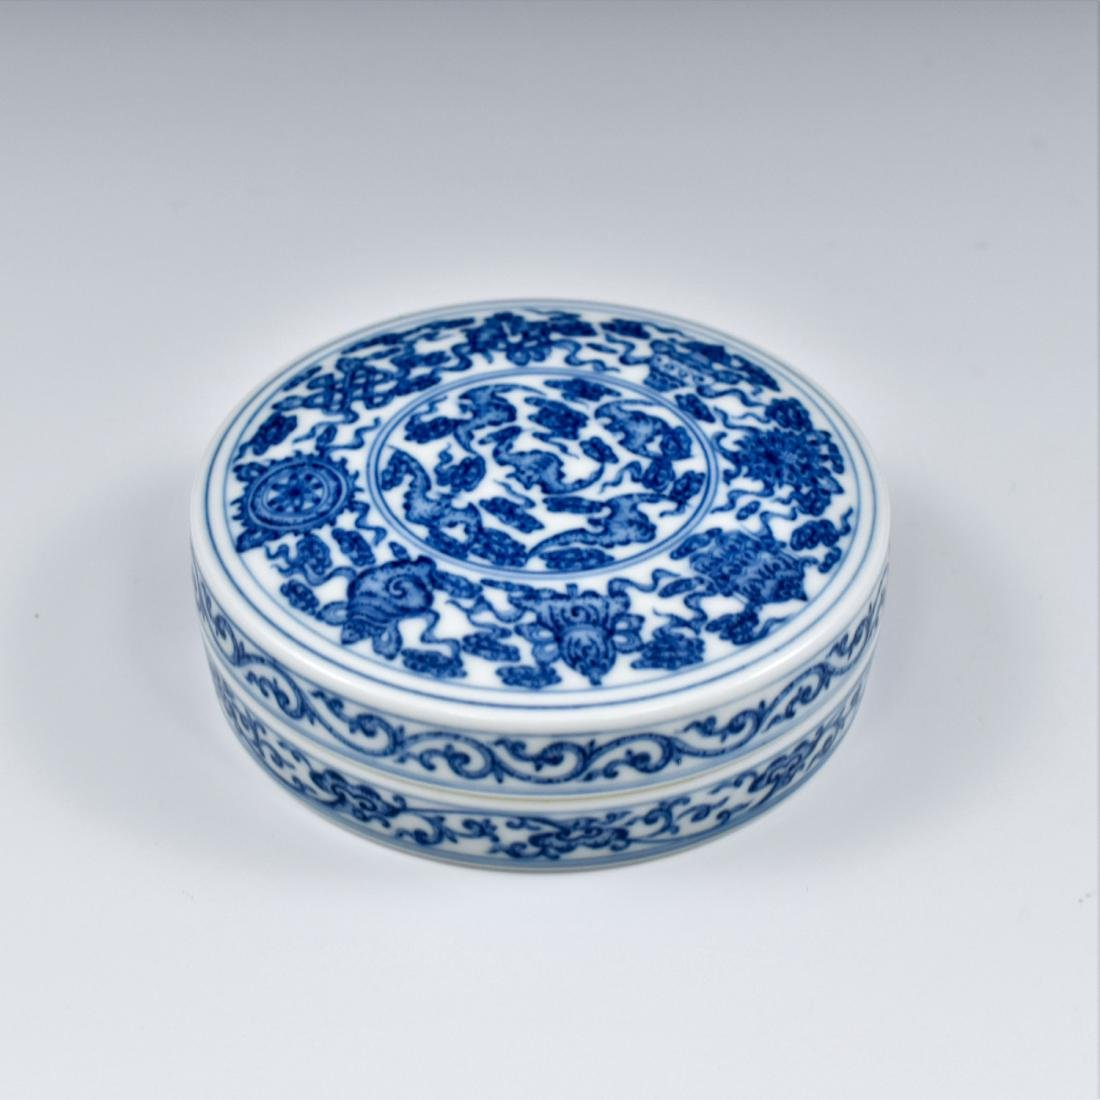 QING CHINESE PORCELAIN INK BOX - 5